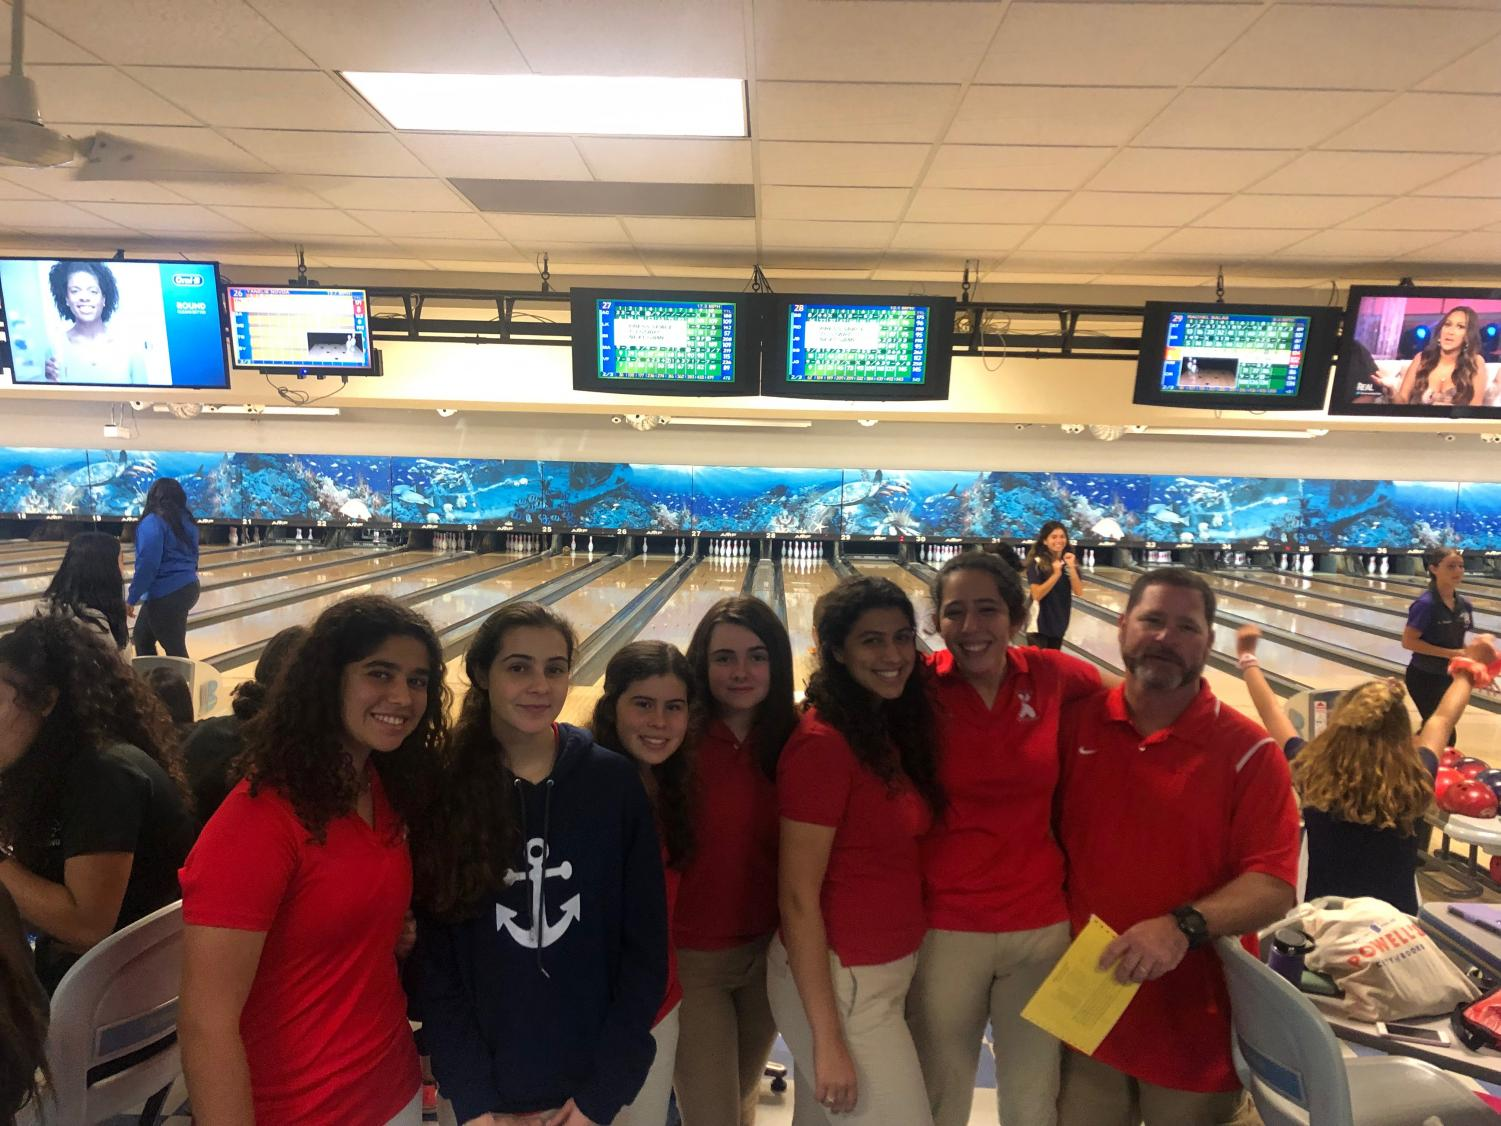 The Coral Gables Lady Cavalier Bowling team poses for a team picture with coach Campagna.